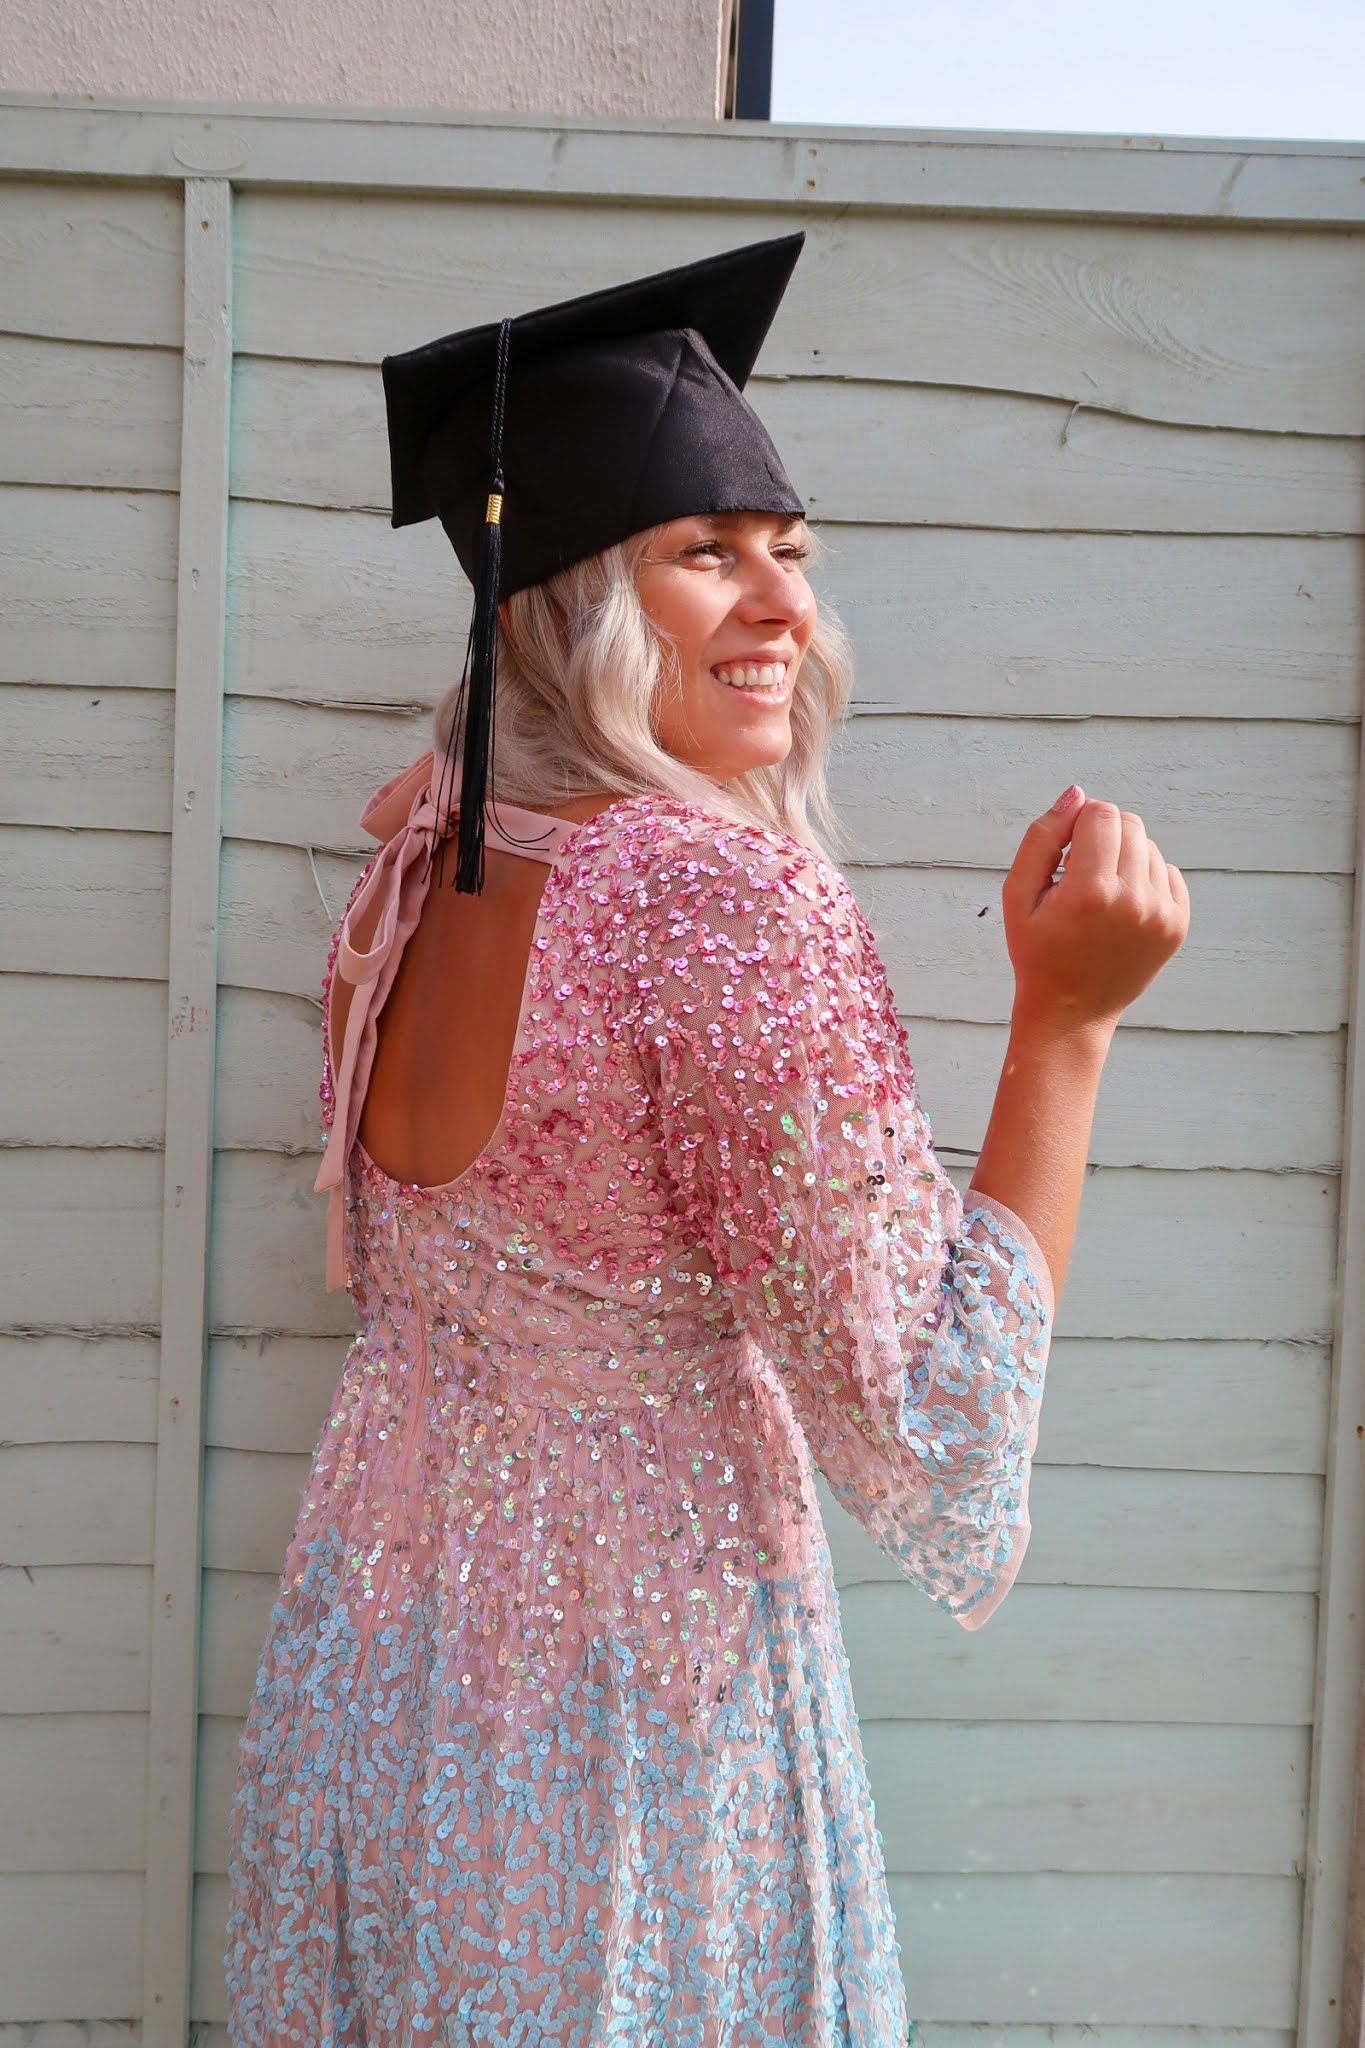 Rachel Emily wearing a rainbow Maya Deluxe Sequin Dress and Graduation Hat - Rachel Emily Blog